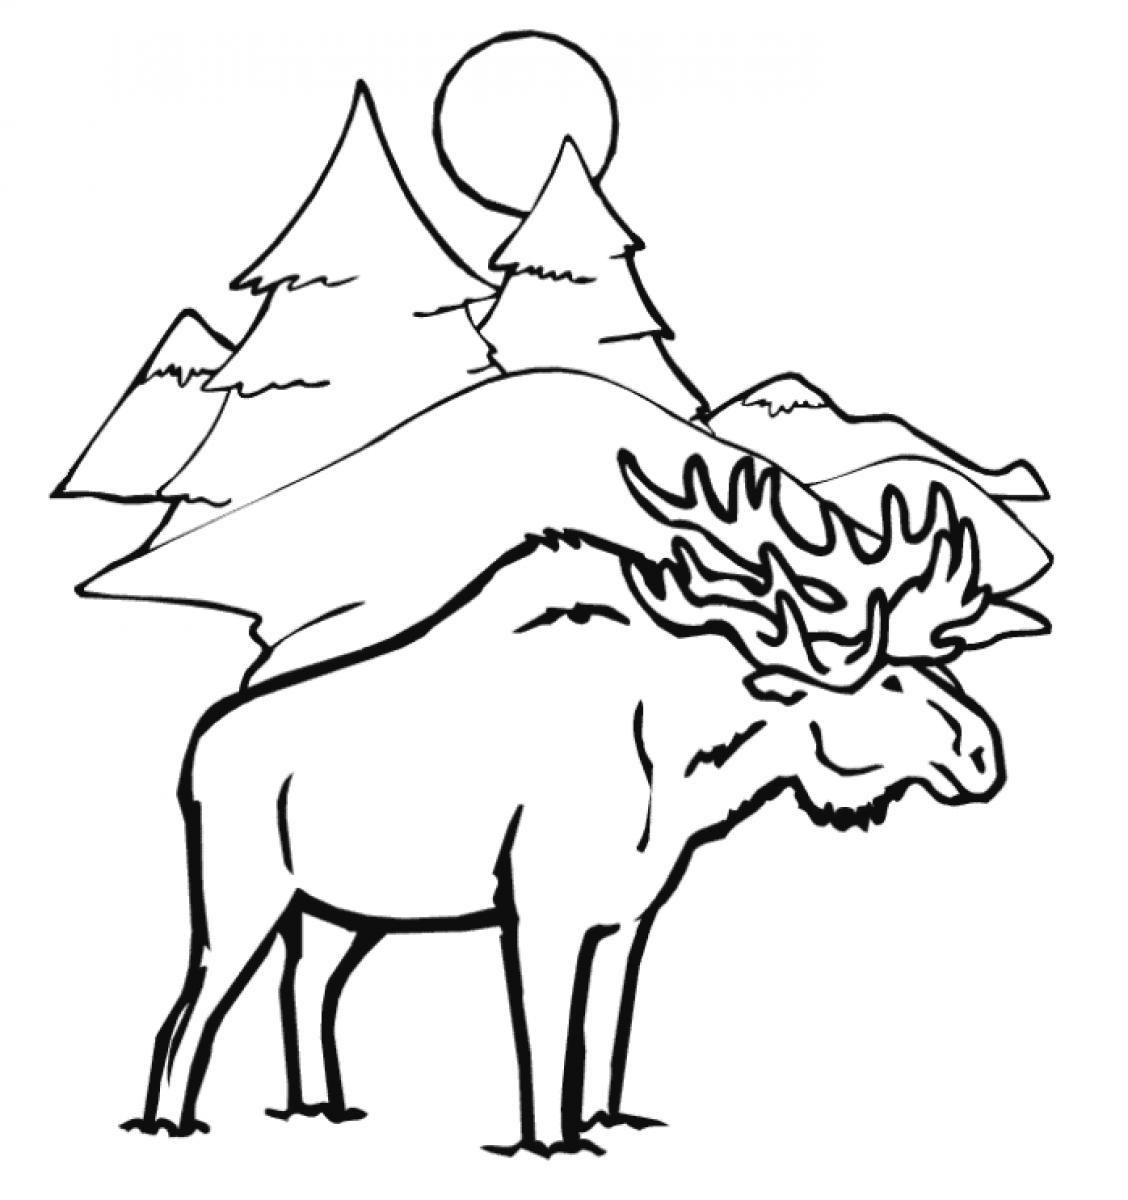 moose-coloring-page-0011-q1